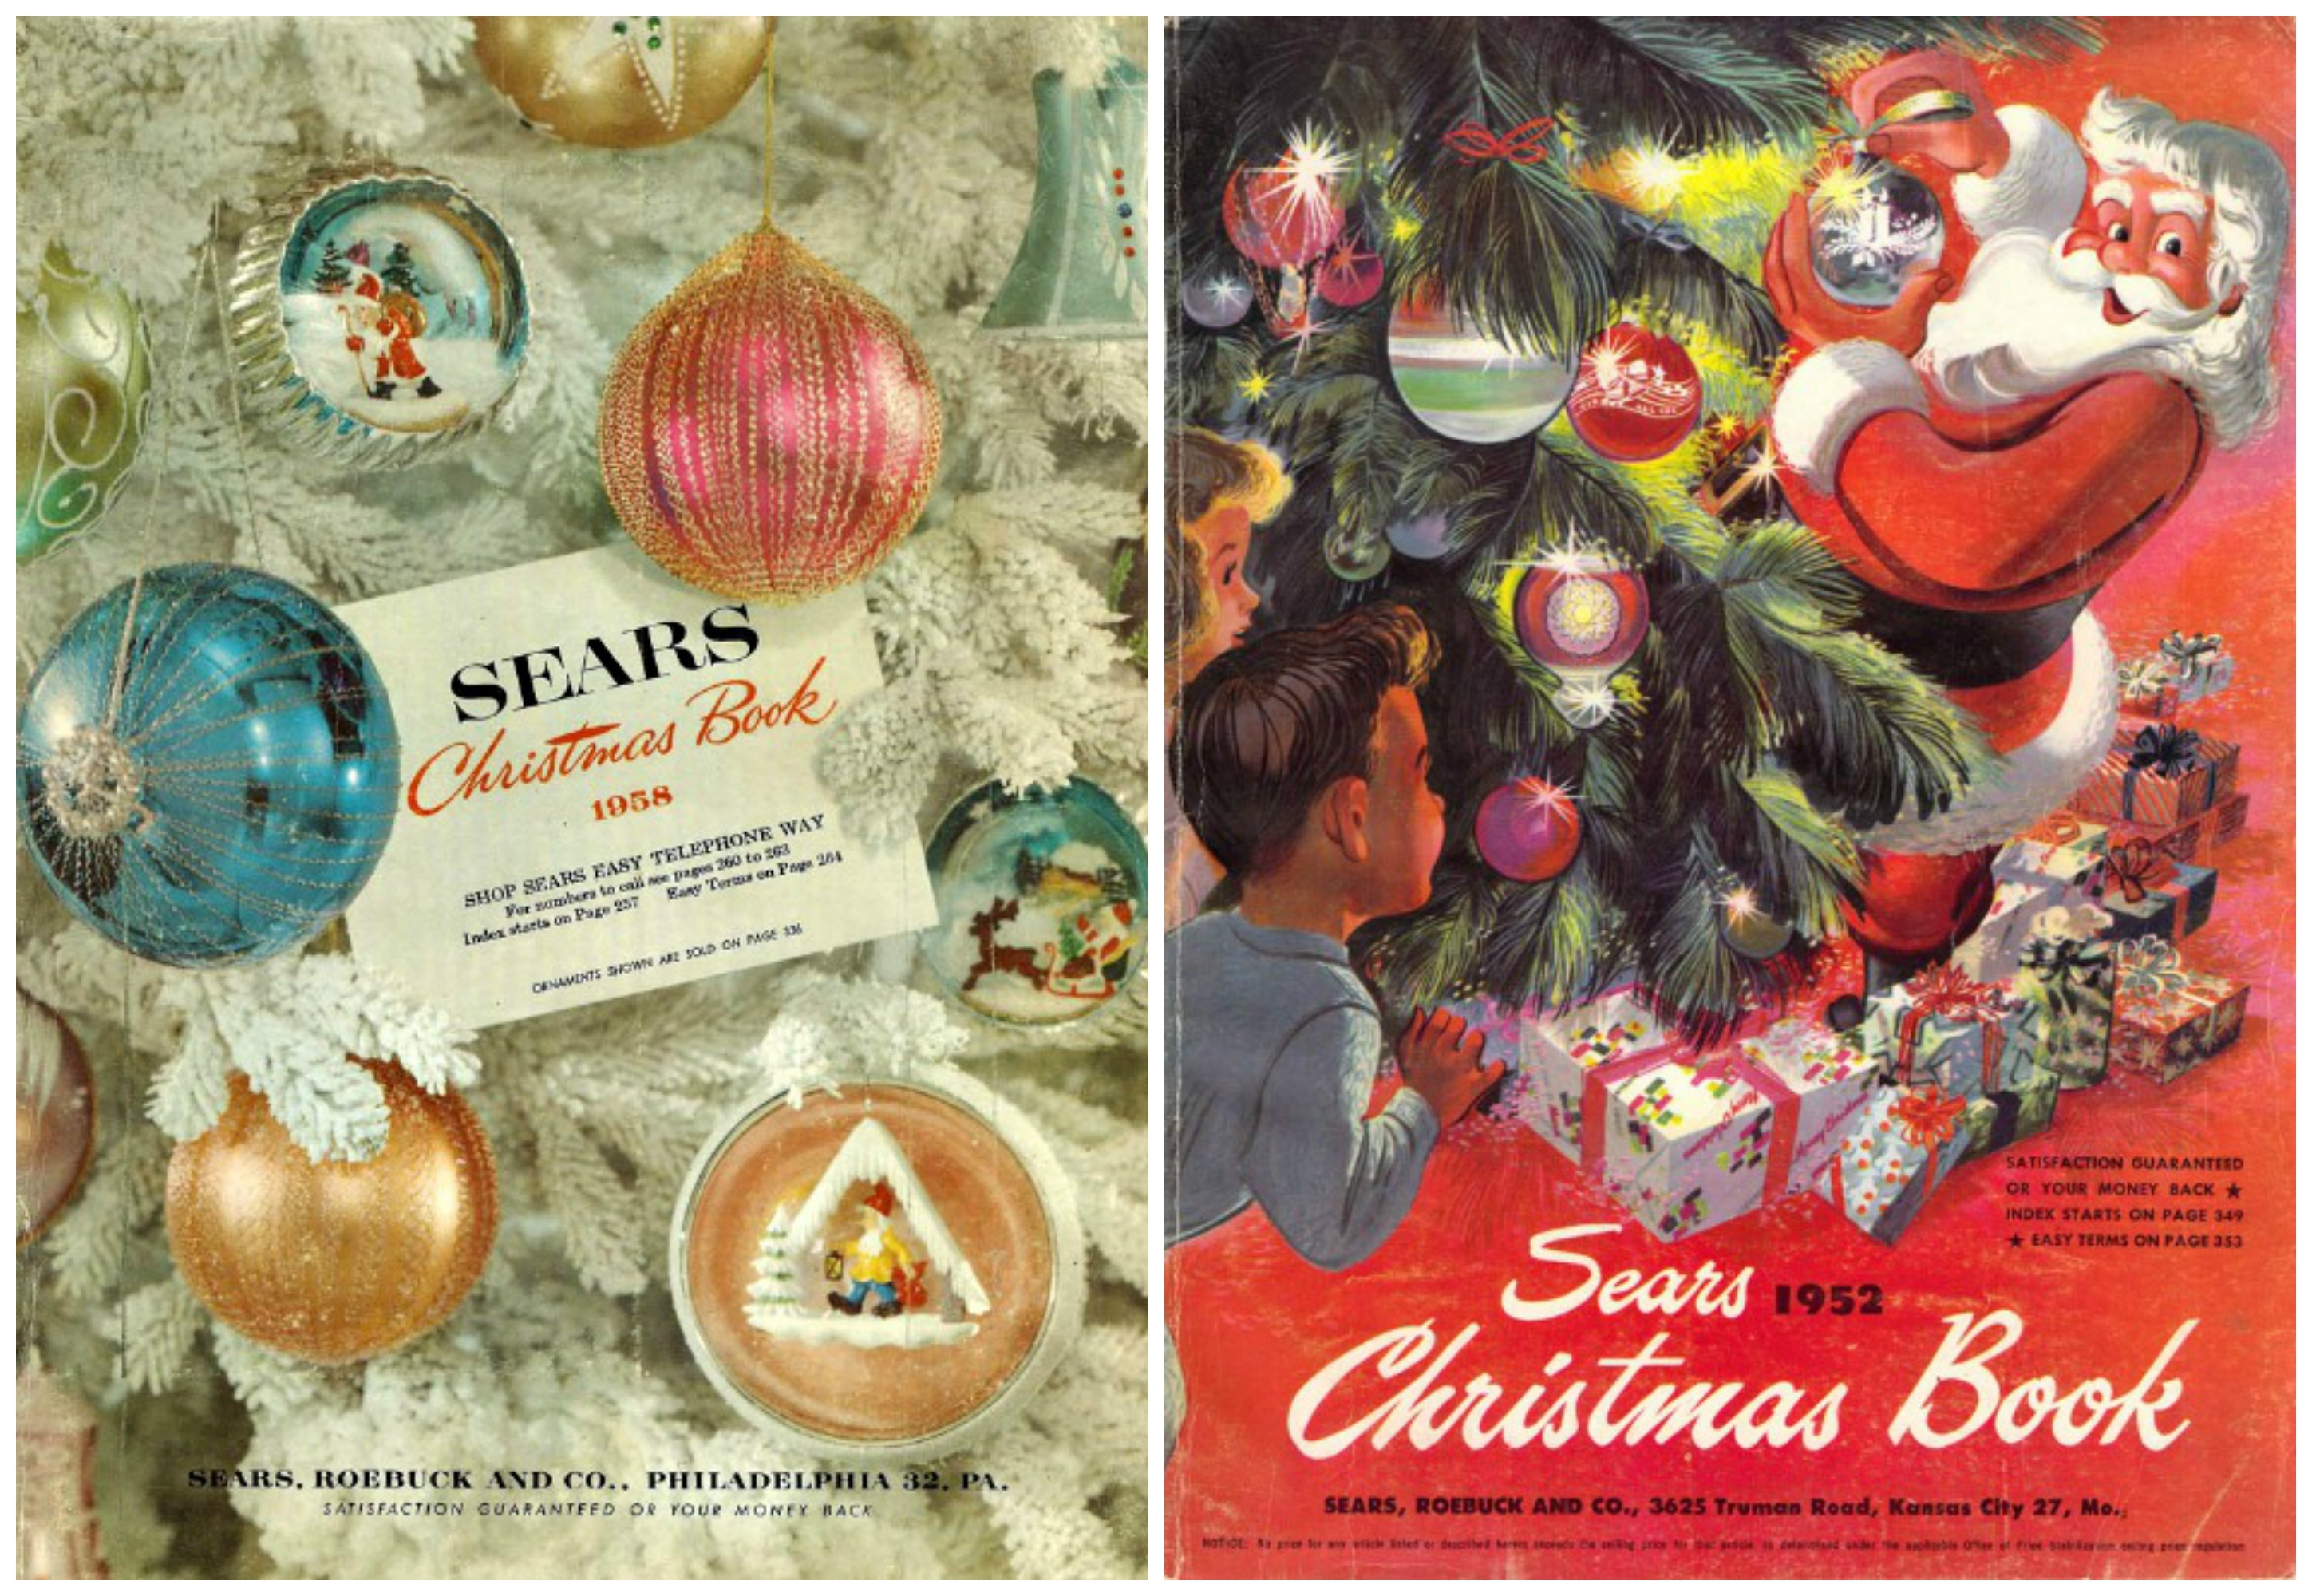 xmas catalogs sears 1958 1952 - Christmas Gift Catalogs